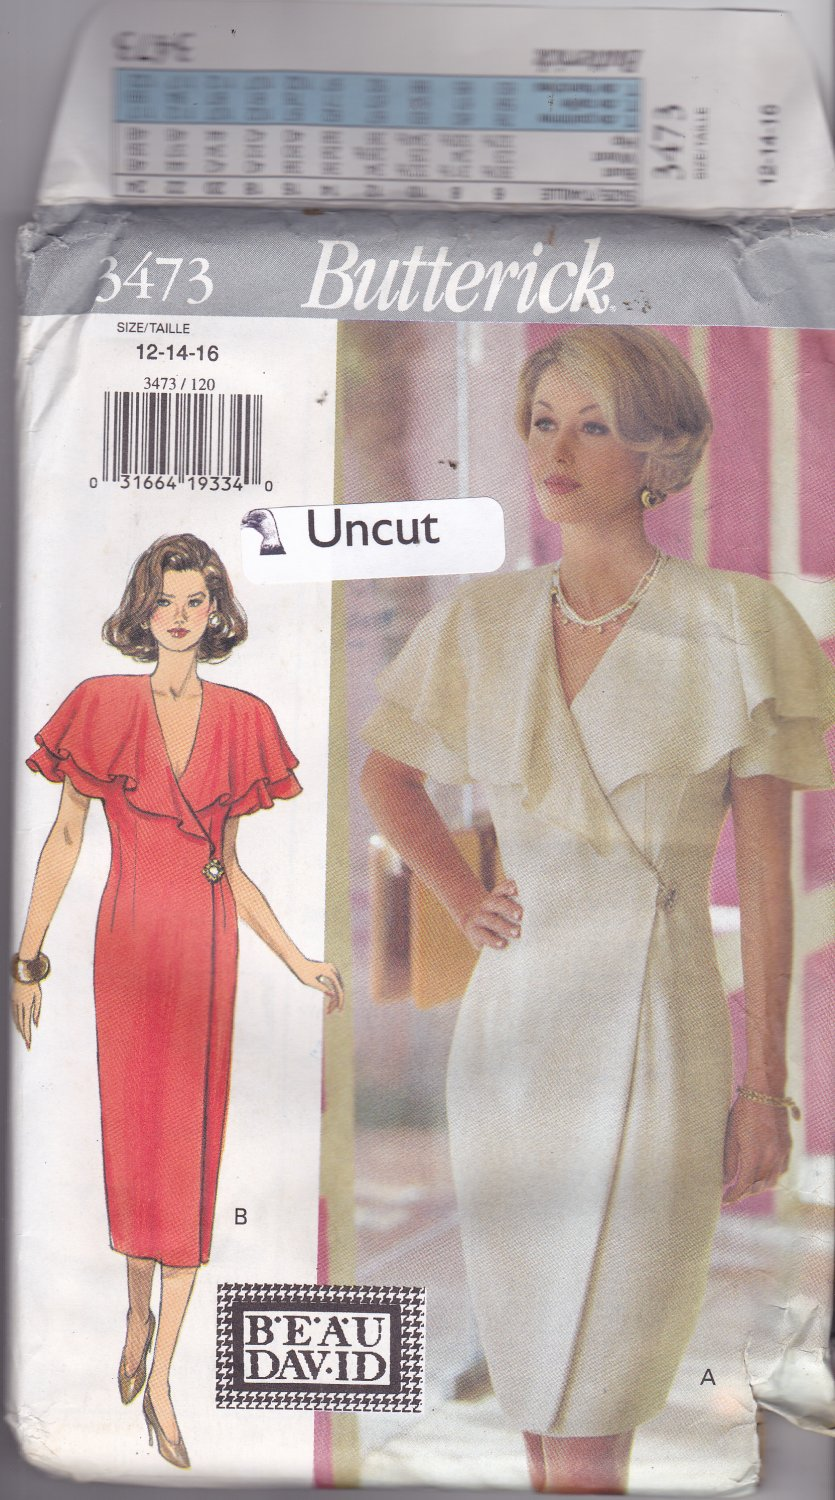 Butterick 3473 Pattern 12 14 16 uncut Semi-Fitted Wrap Dress Flouncy Sleeves Evening